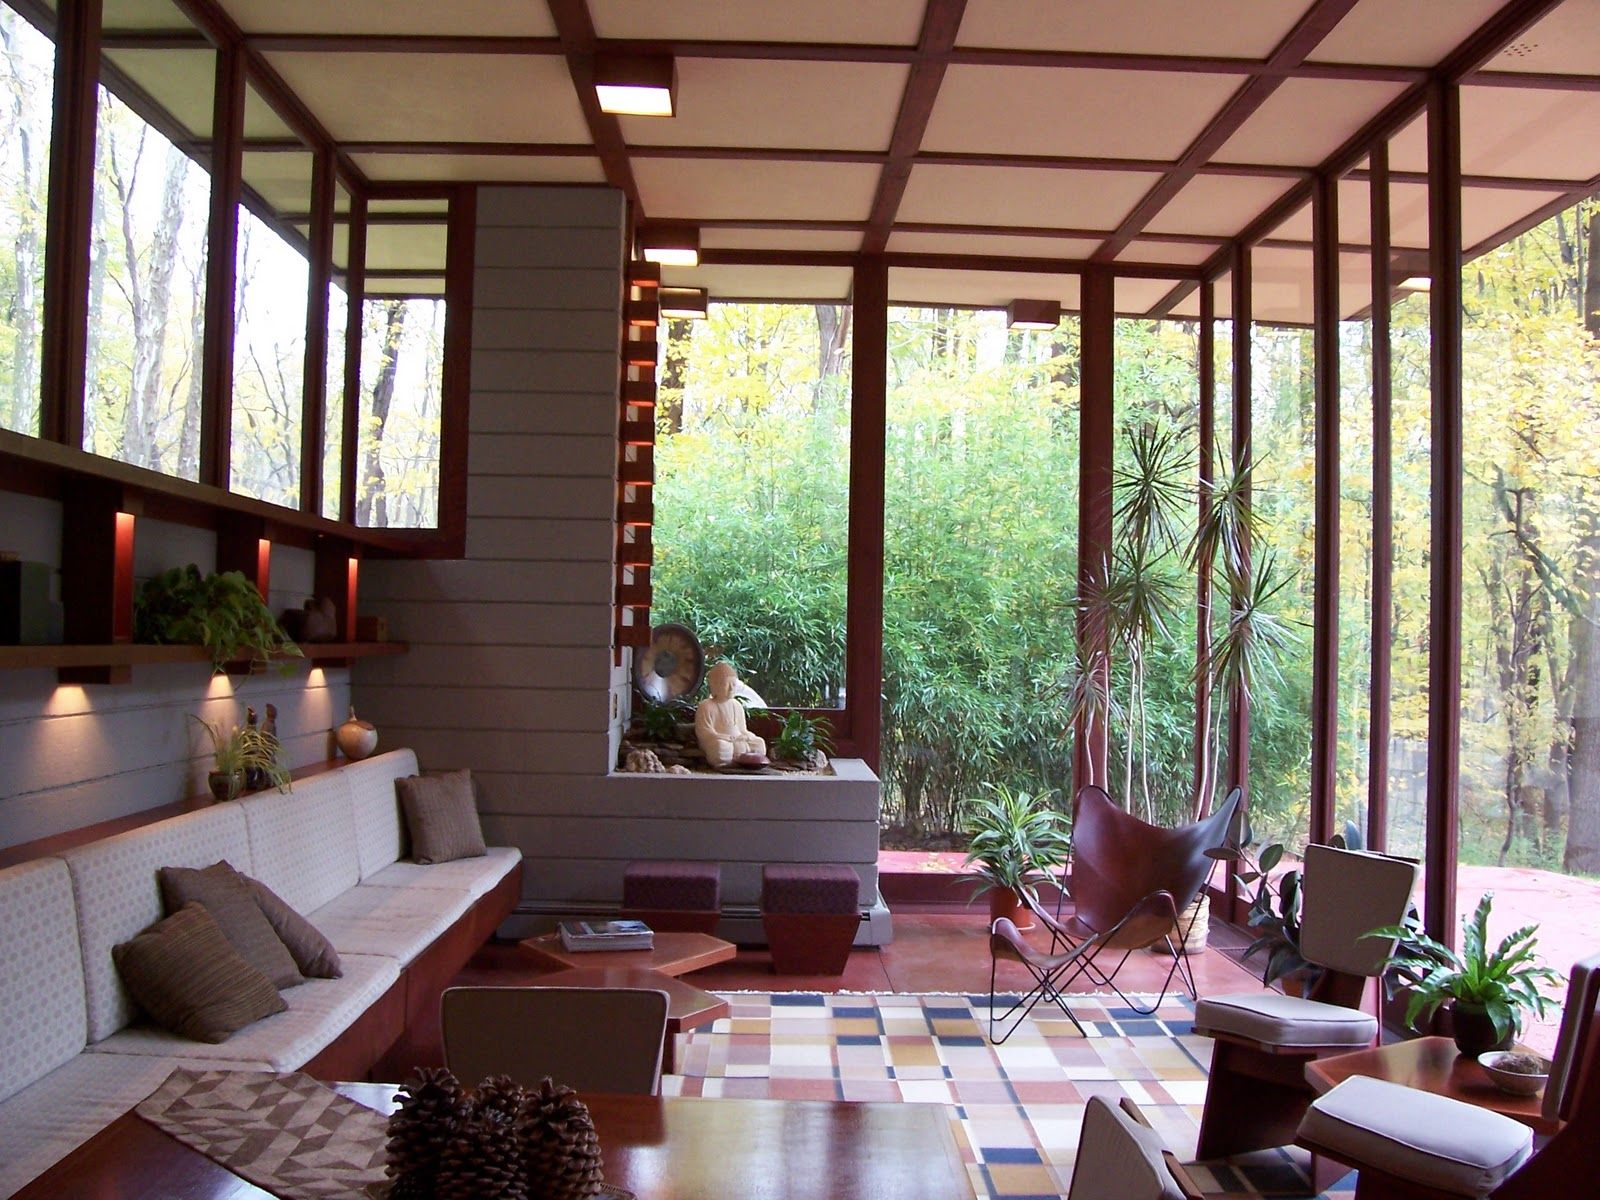 Louis penfield house 1955 willoughby hills cleveland ohio usonian style frank lloyd wright for Commercial interior design cleveland